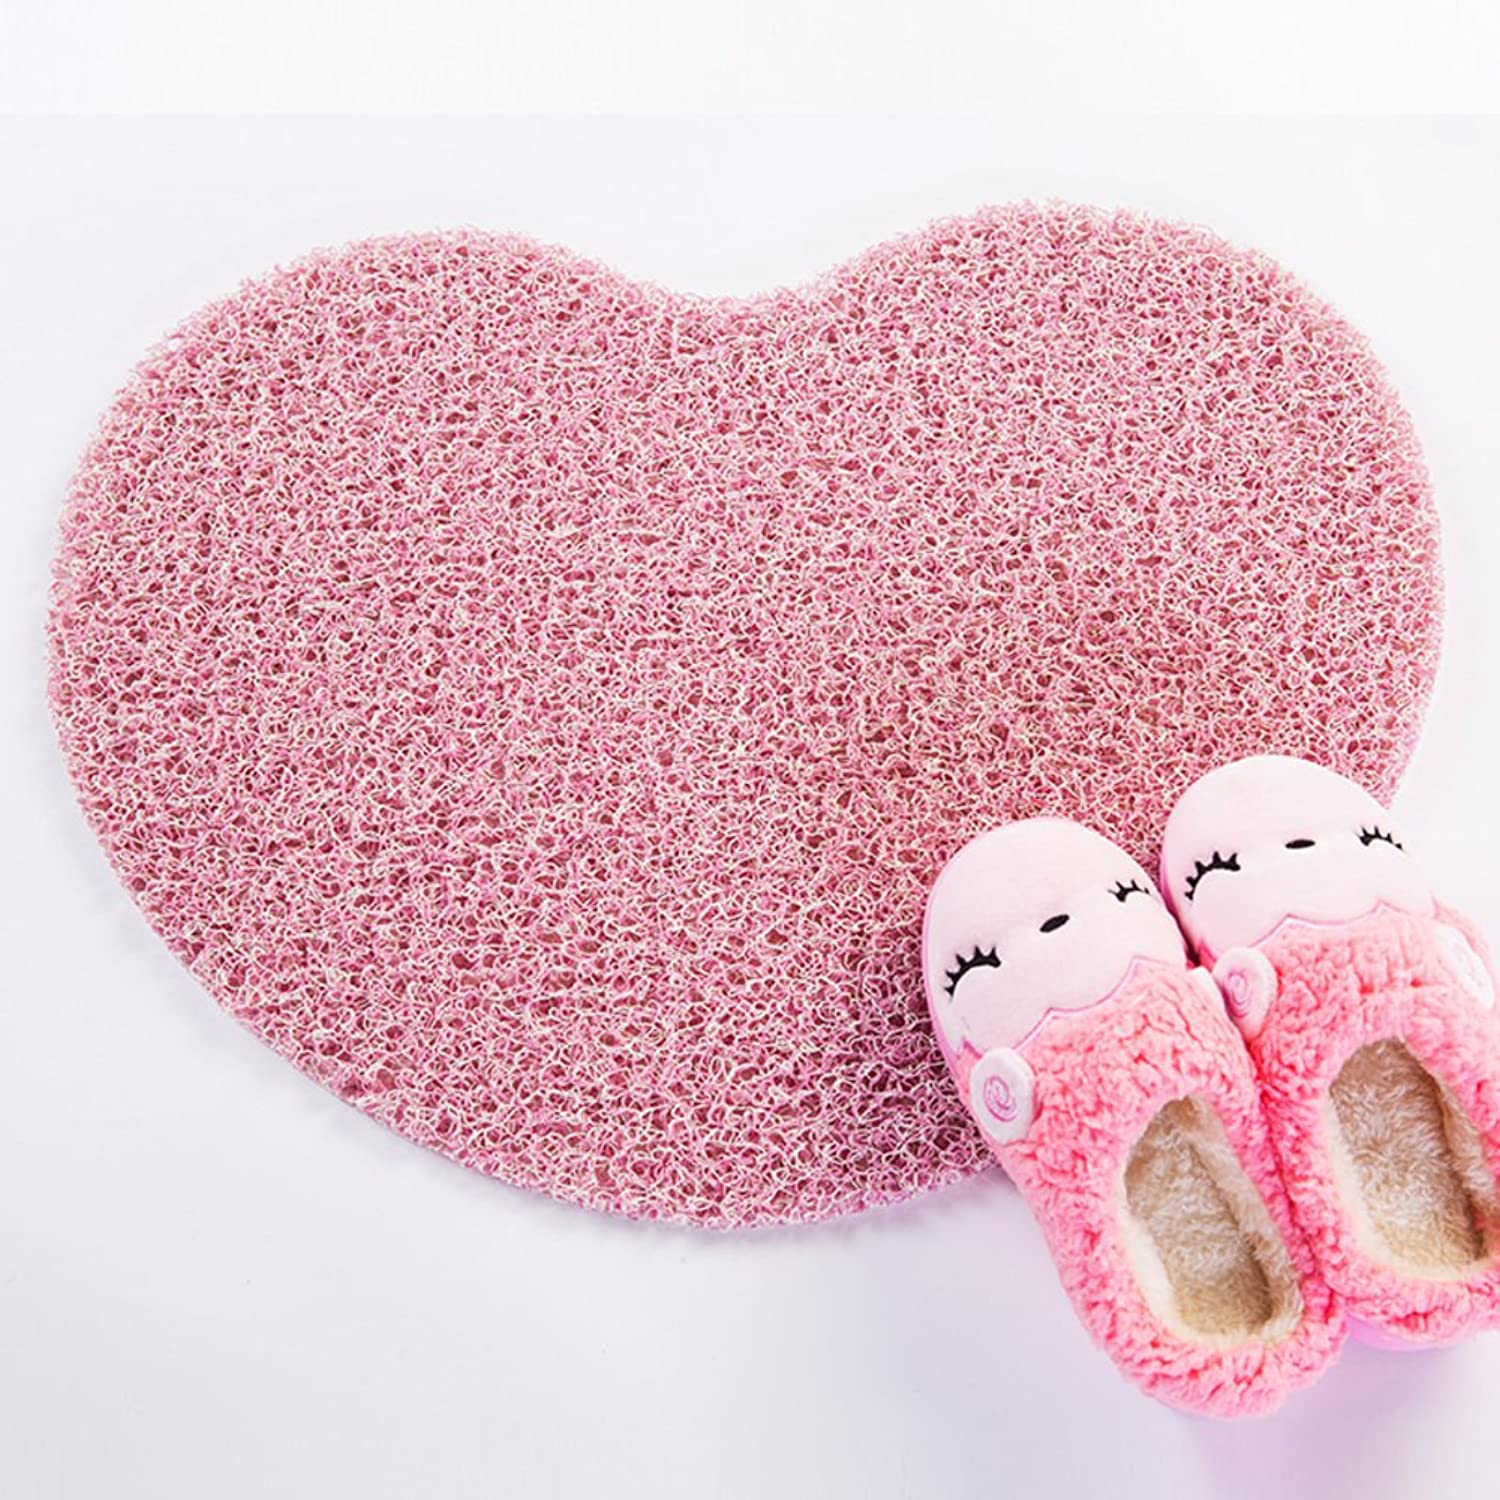 Heart-shaped door mat Doormat Door The door Lobby floor mats Plastic pvc antiskid mat Bathroom mat Hollow floor mats-F 60x70cm(24x28inch)